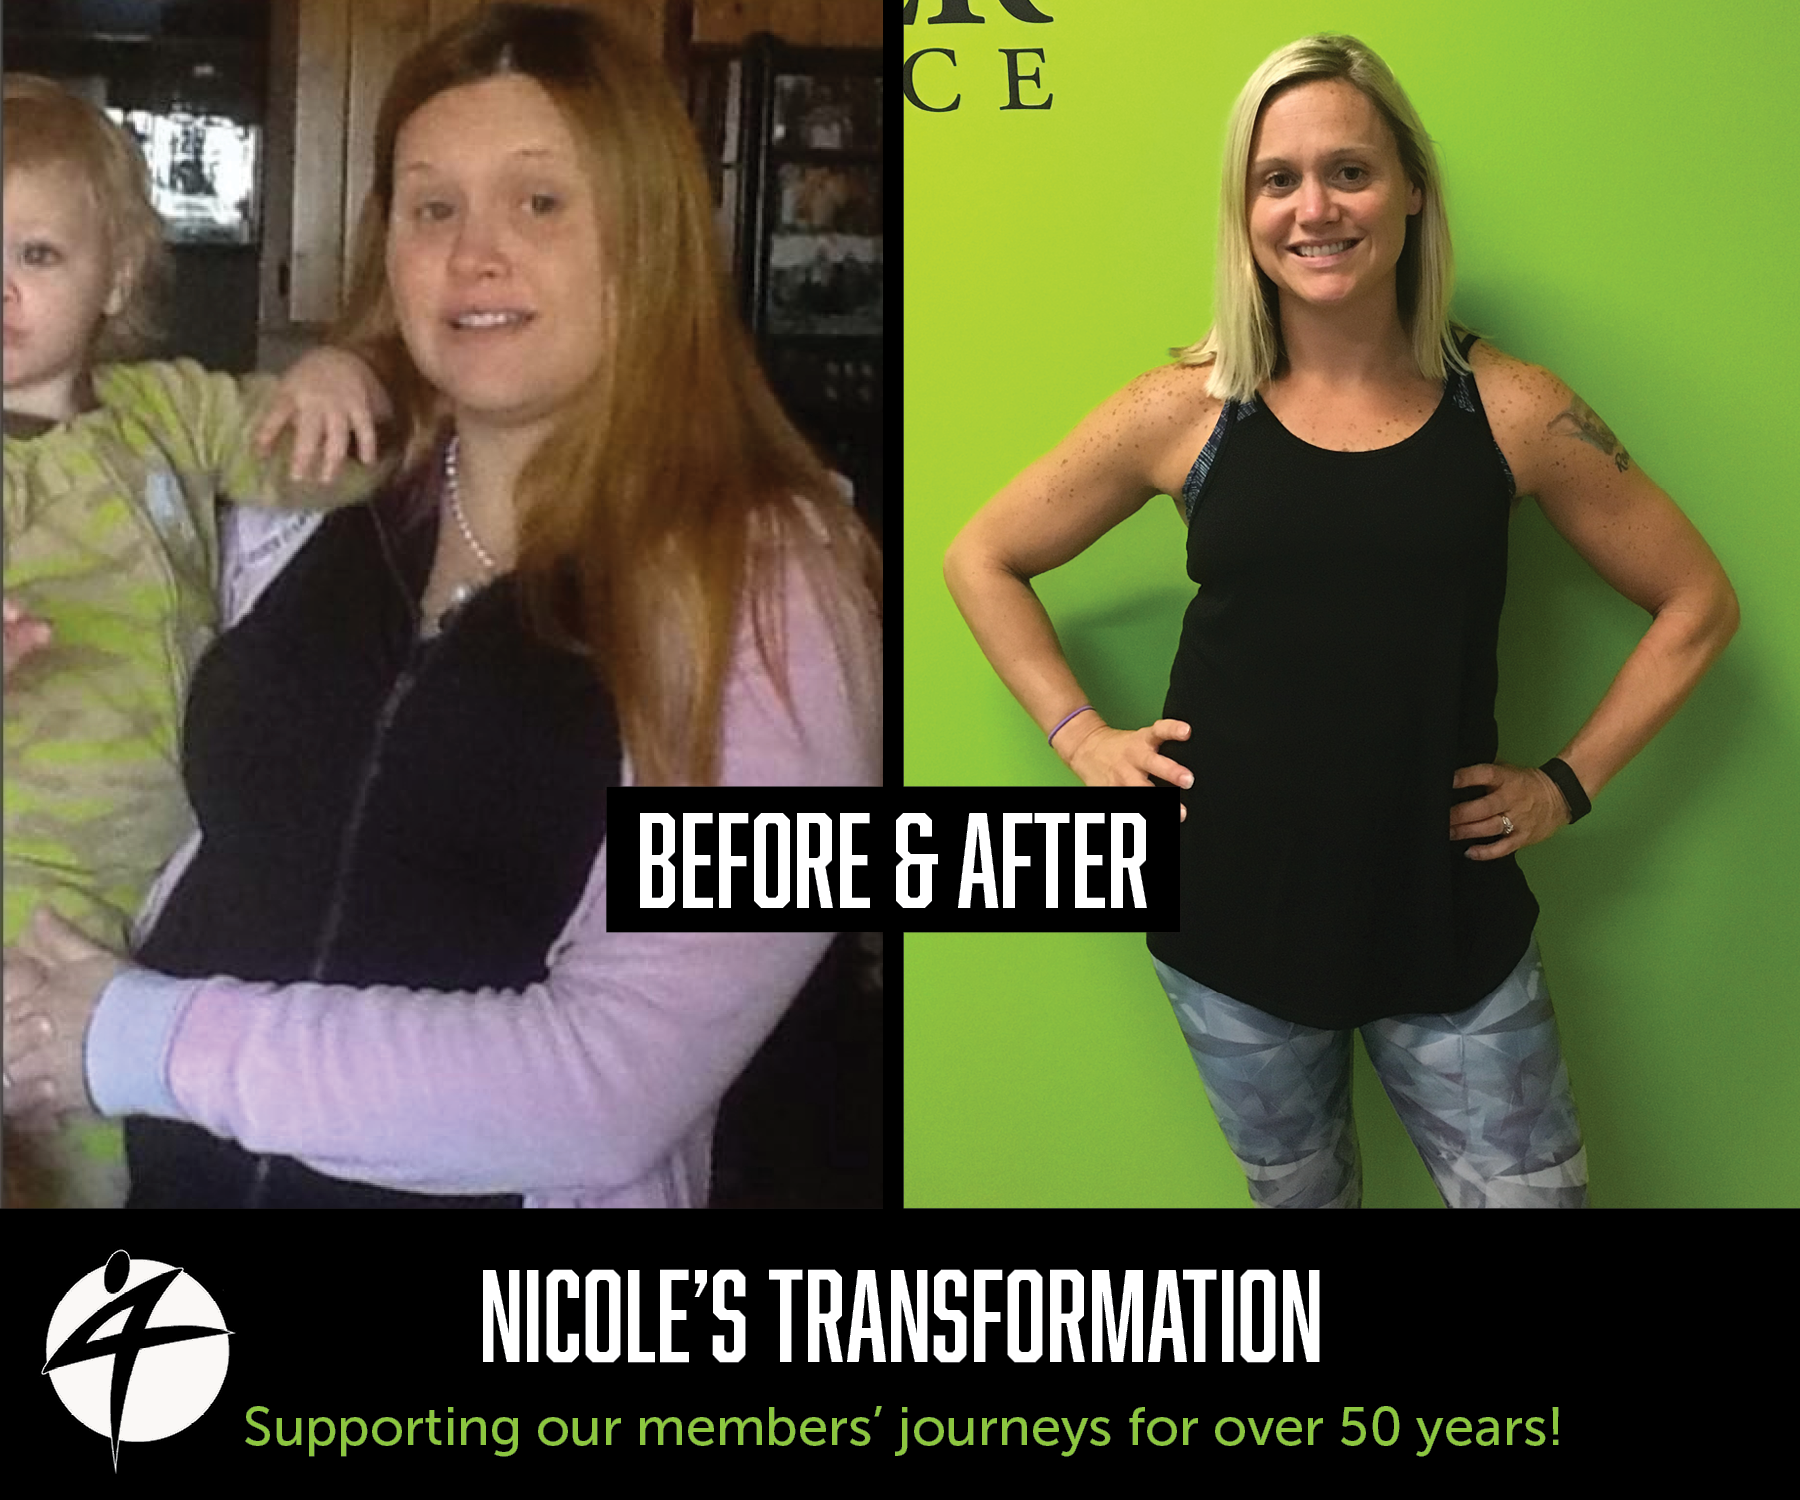 Nicole's before and after photo